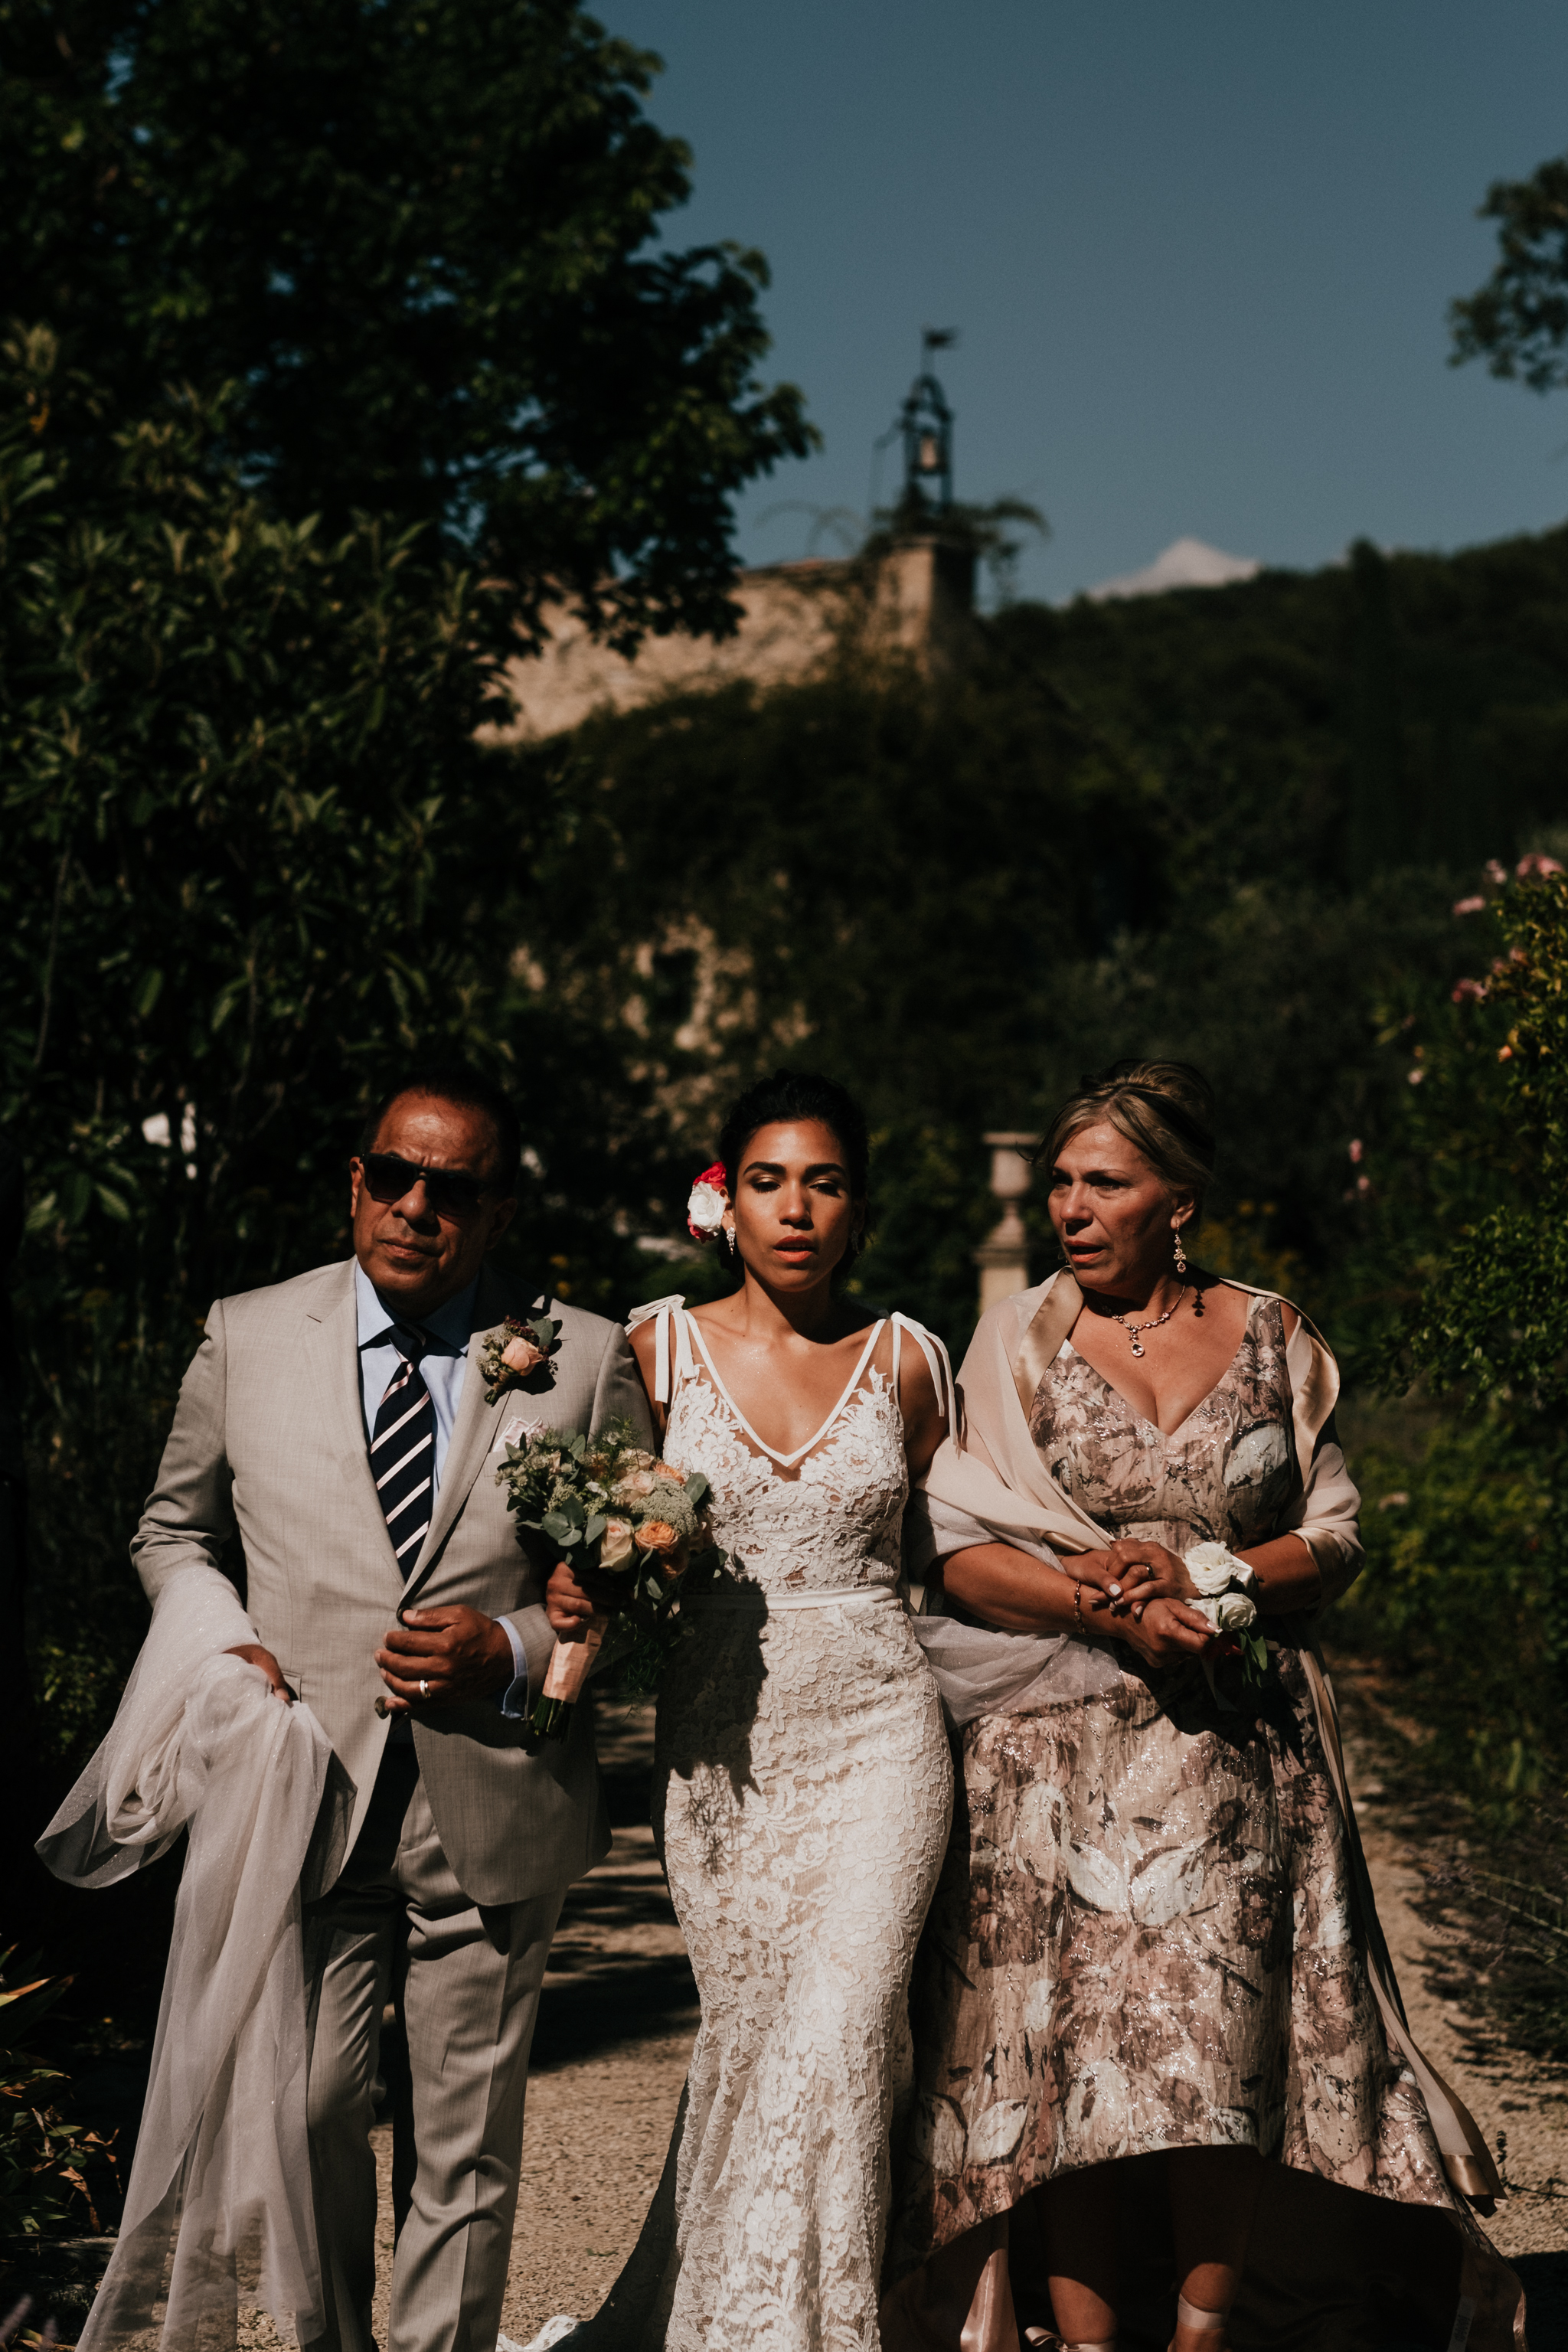 Fontaine-de-Saumane-South-of-France-Marseille-Wedding-Photographer